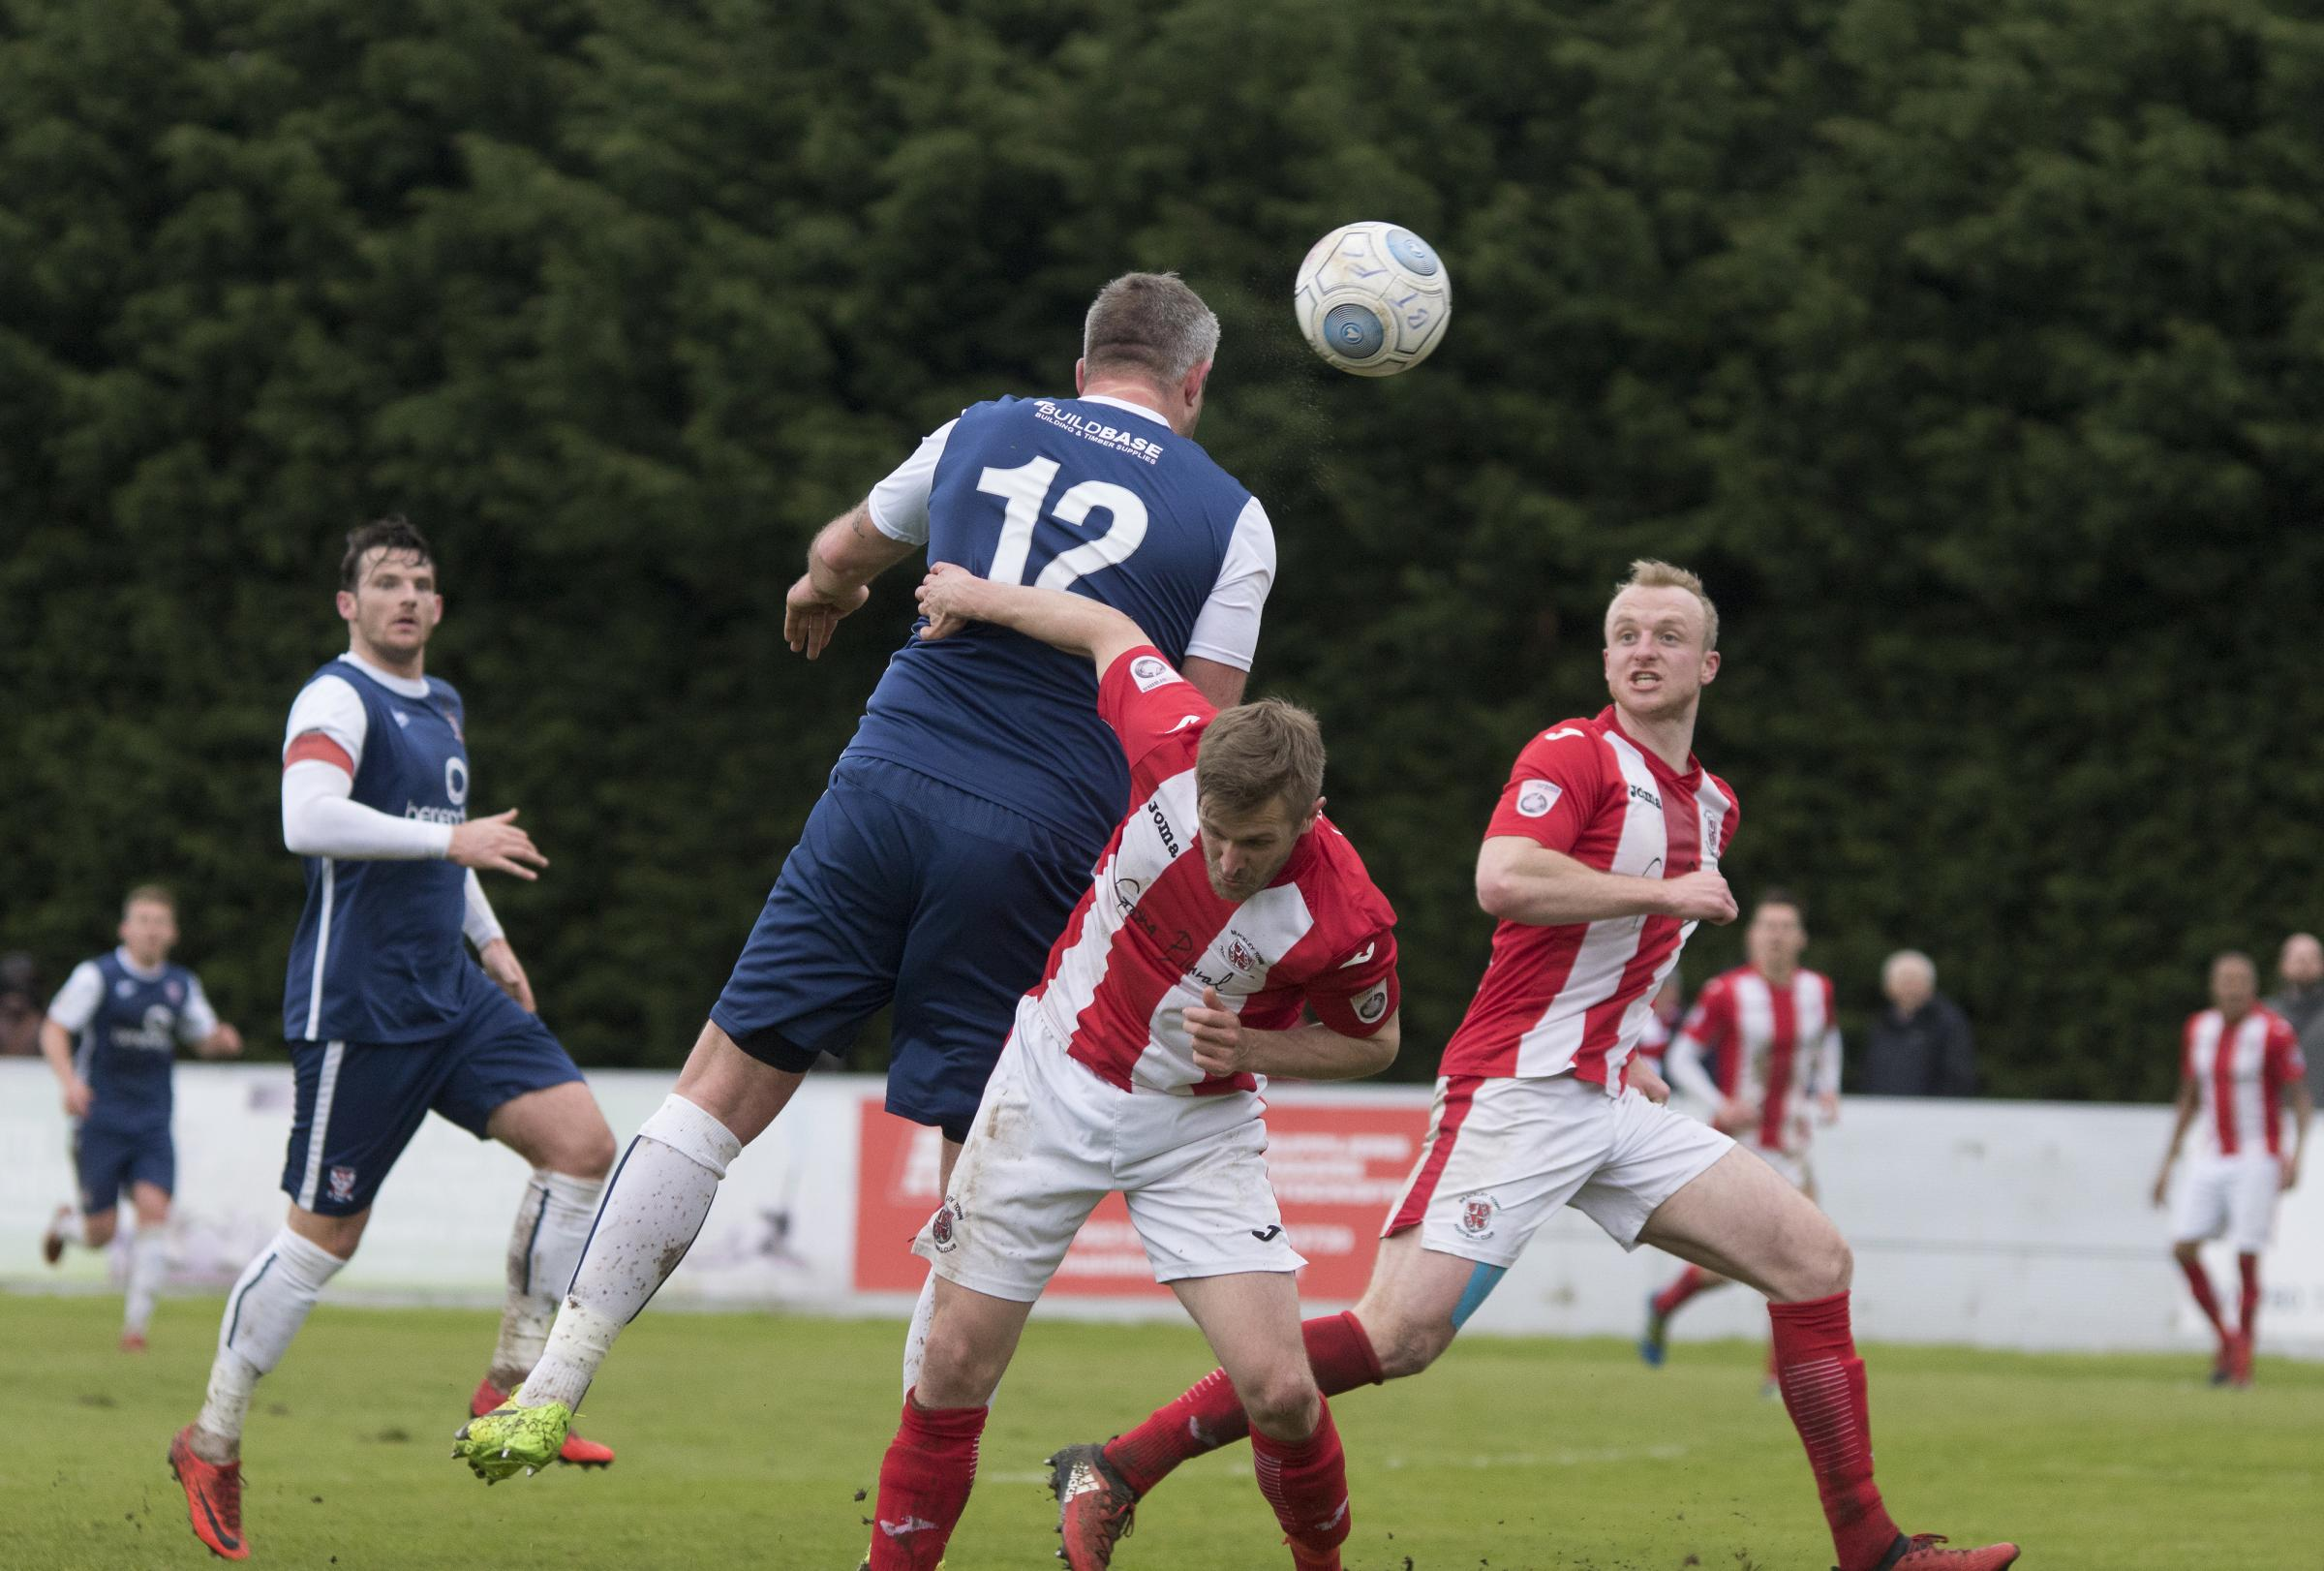 EYES ON TARGET: Jon Parkin, pictured scoring a disallowed goal against Brackley at the weekend, is in no mood to hang up his boots at 36 and wants to deliver success for York City next season. Picture: Ian Parker